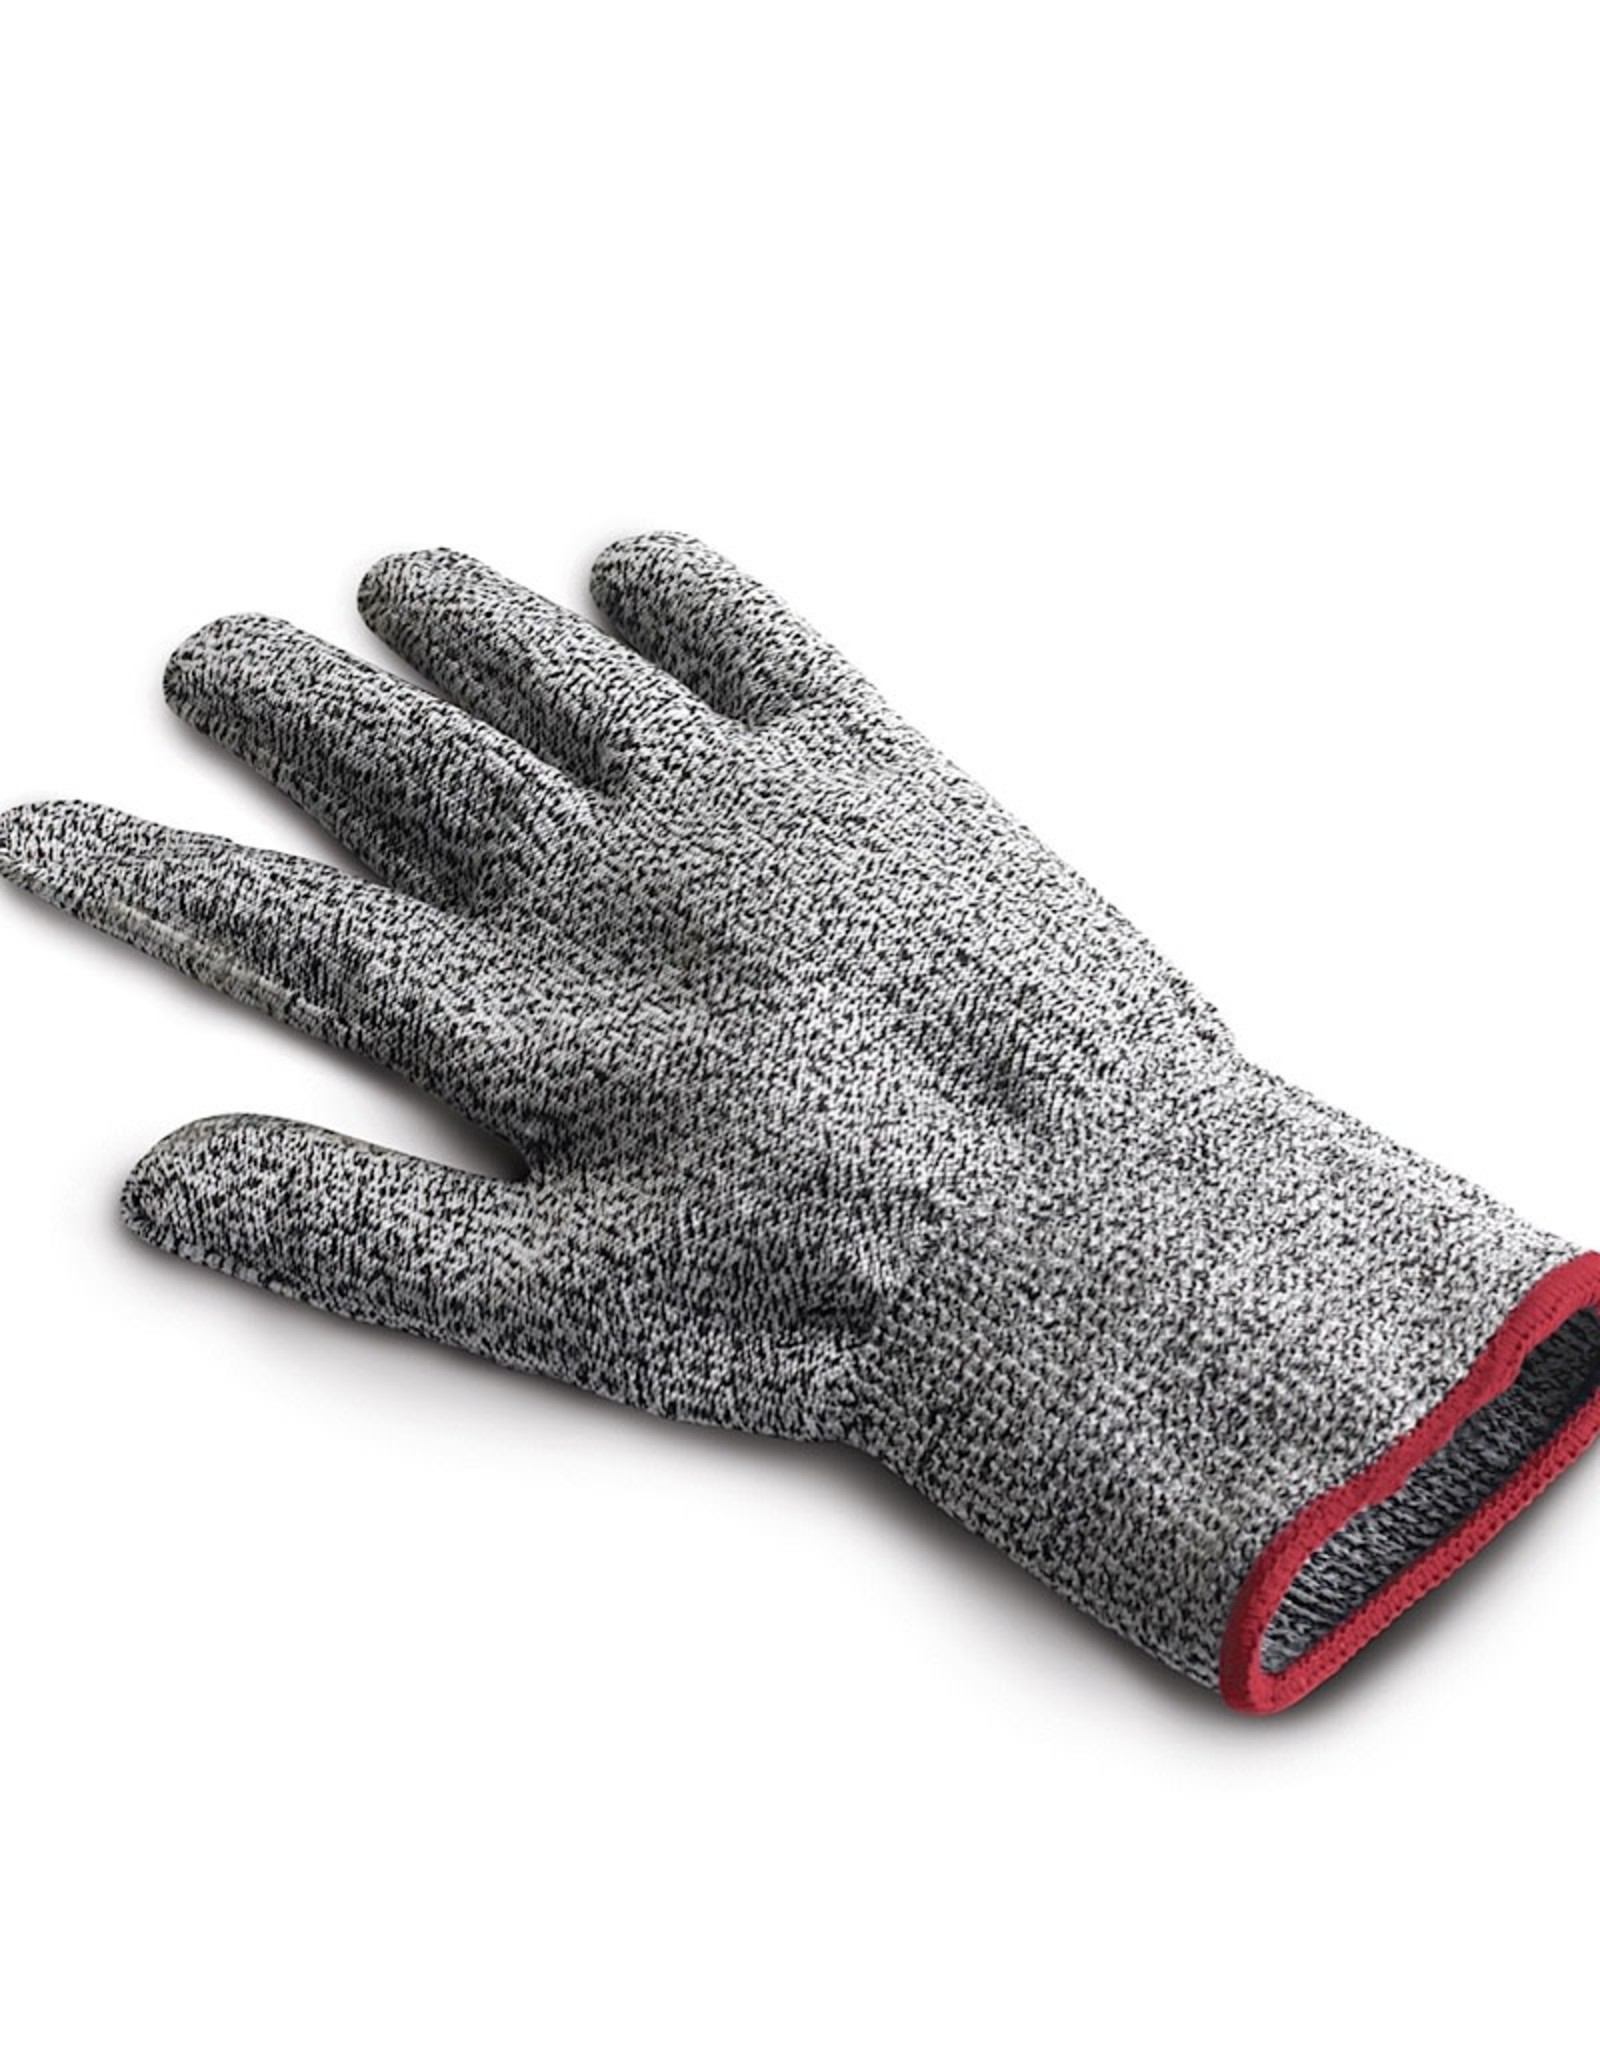 747329 Cuisipro Cut Resistant Glove